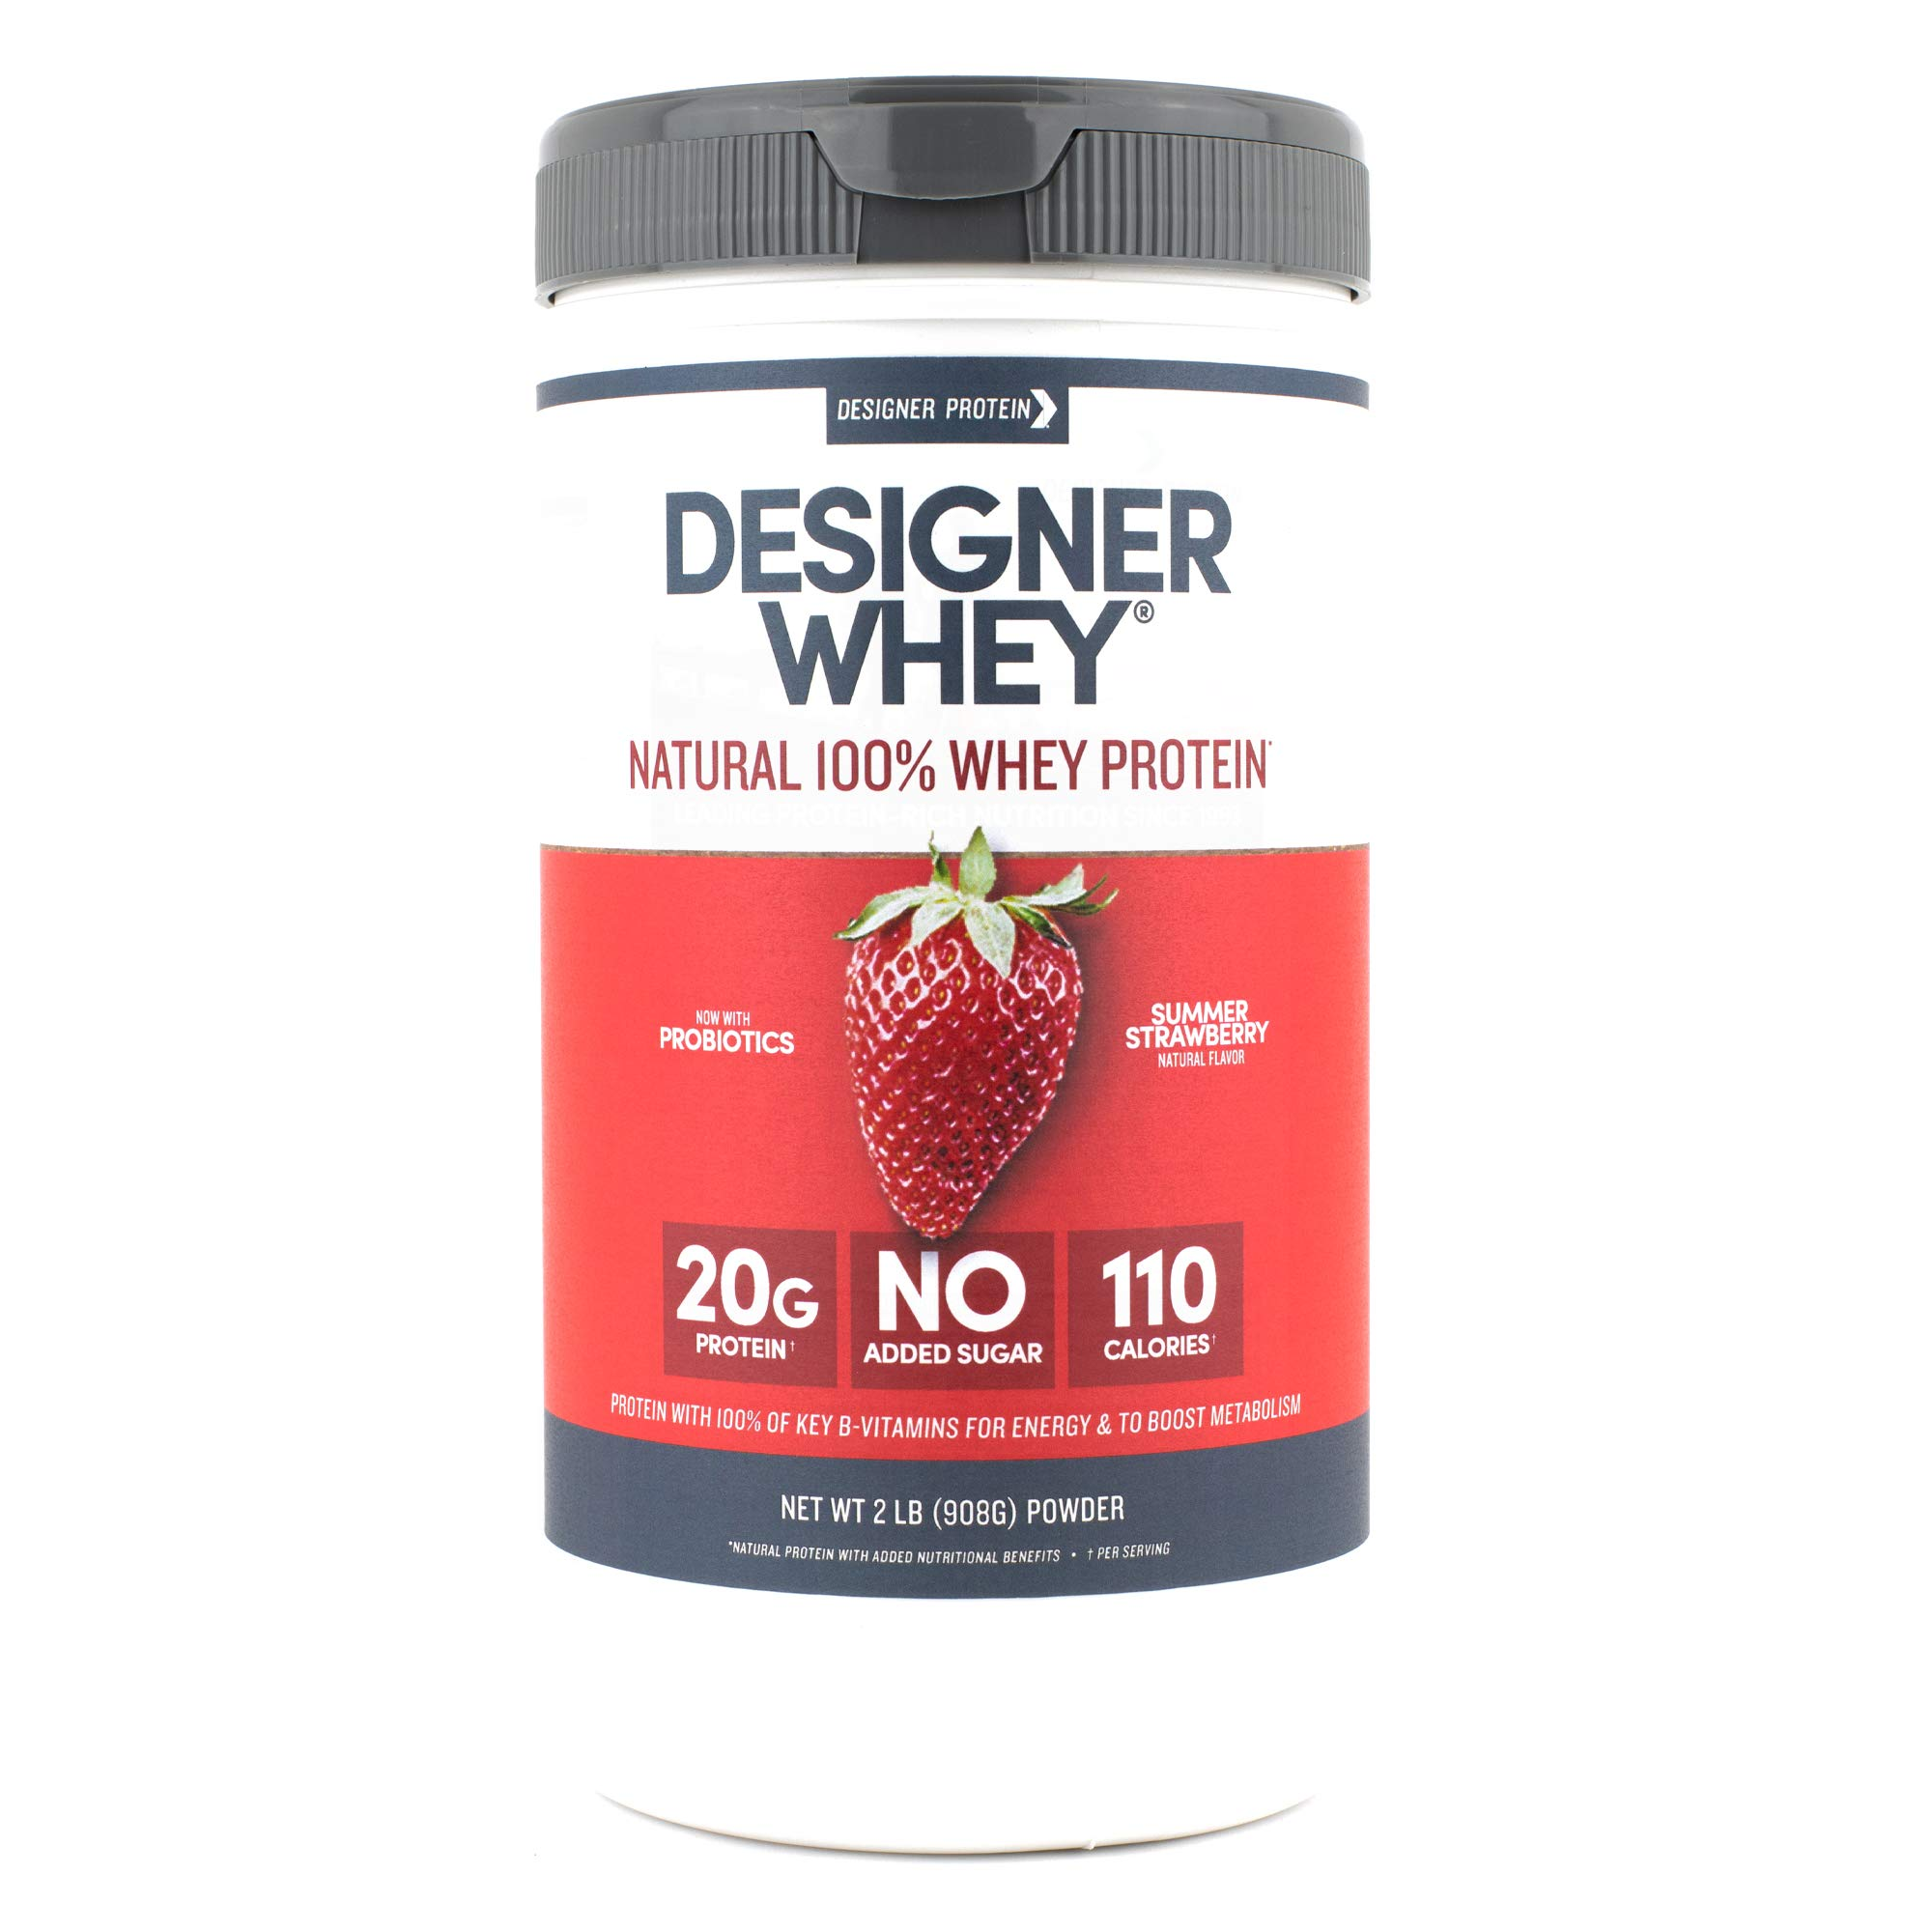 Designer Whey Protein Powder, Summer Strawberry, 2 Pound, Non GMO by Designer Protein